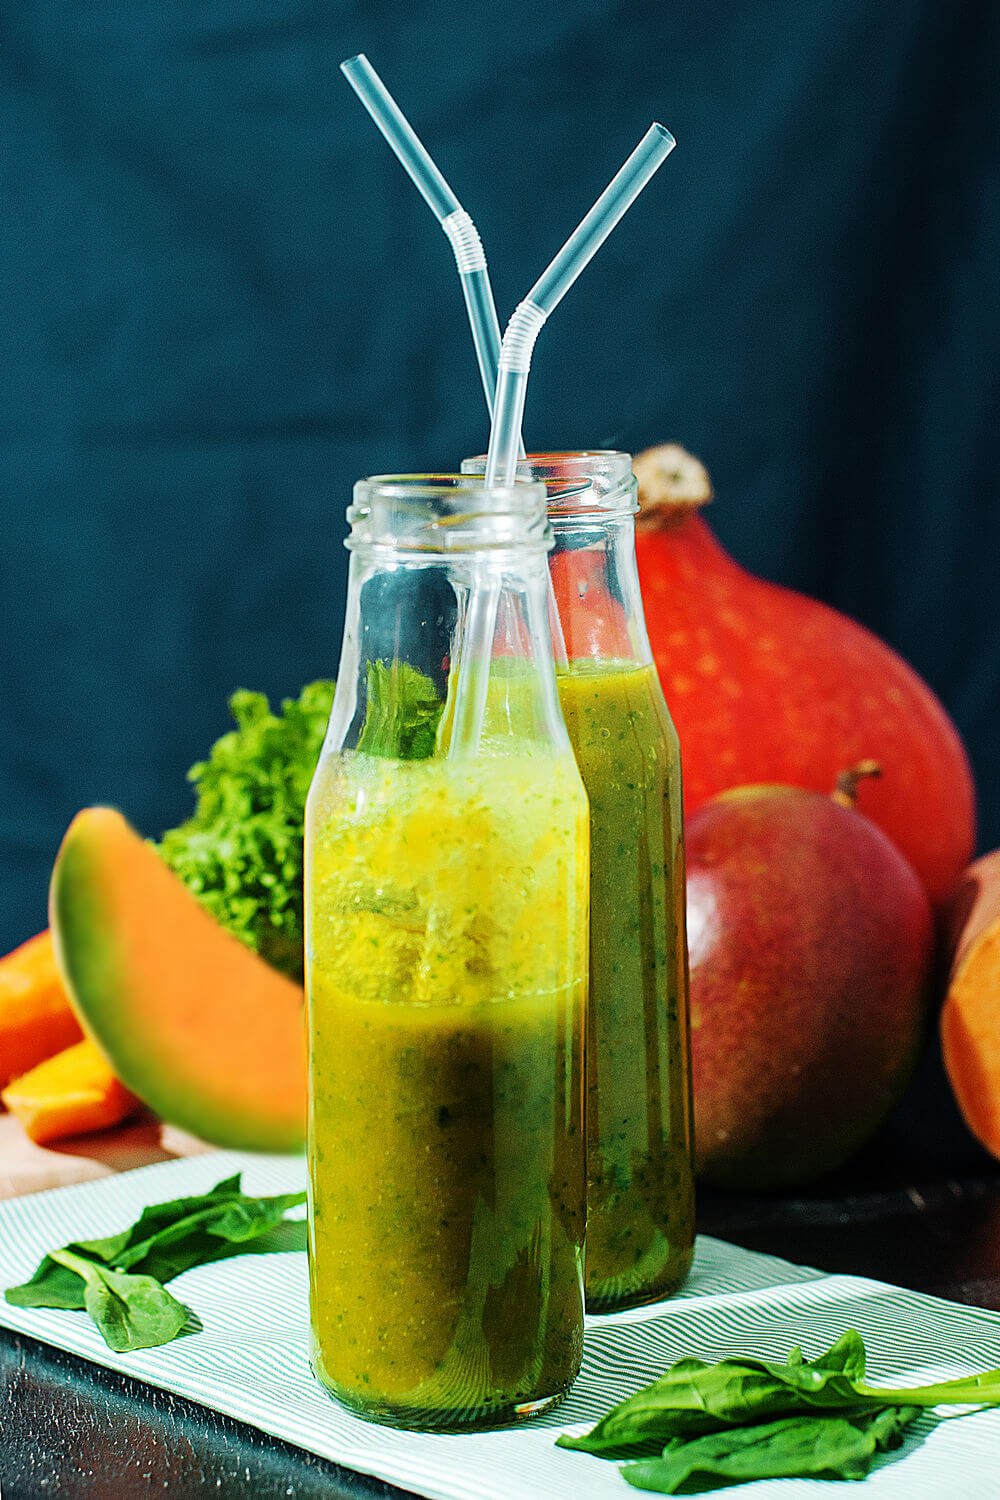 Cantaloupe, kale, carrot juice, pumpkin puree, sweet potato, mango and spinach smoothie